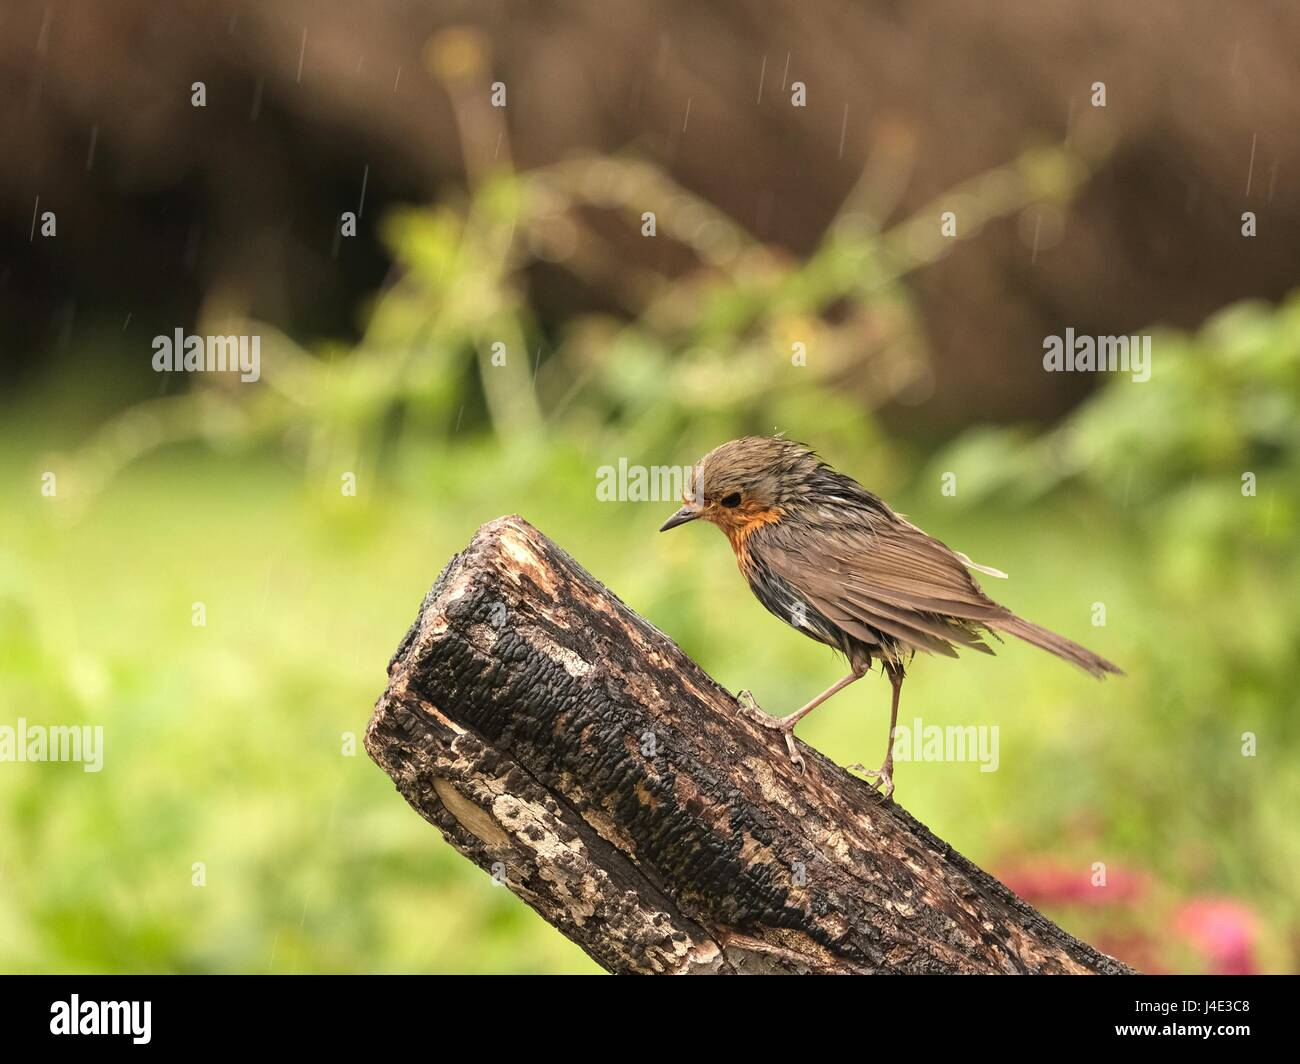 Ferring, West Sussex, UK. Friday 12th May 2017. UK Weather. Britain's favourite garden bird the Robin ventures out Stock Photo